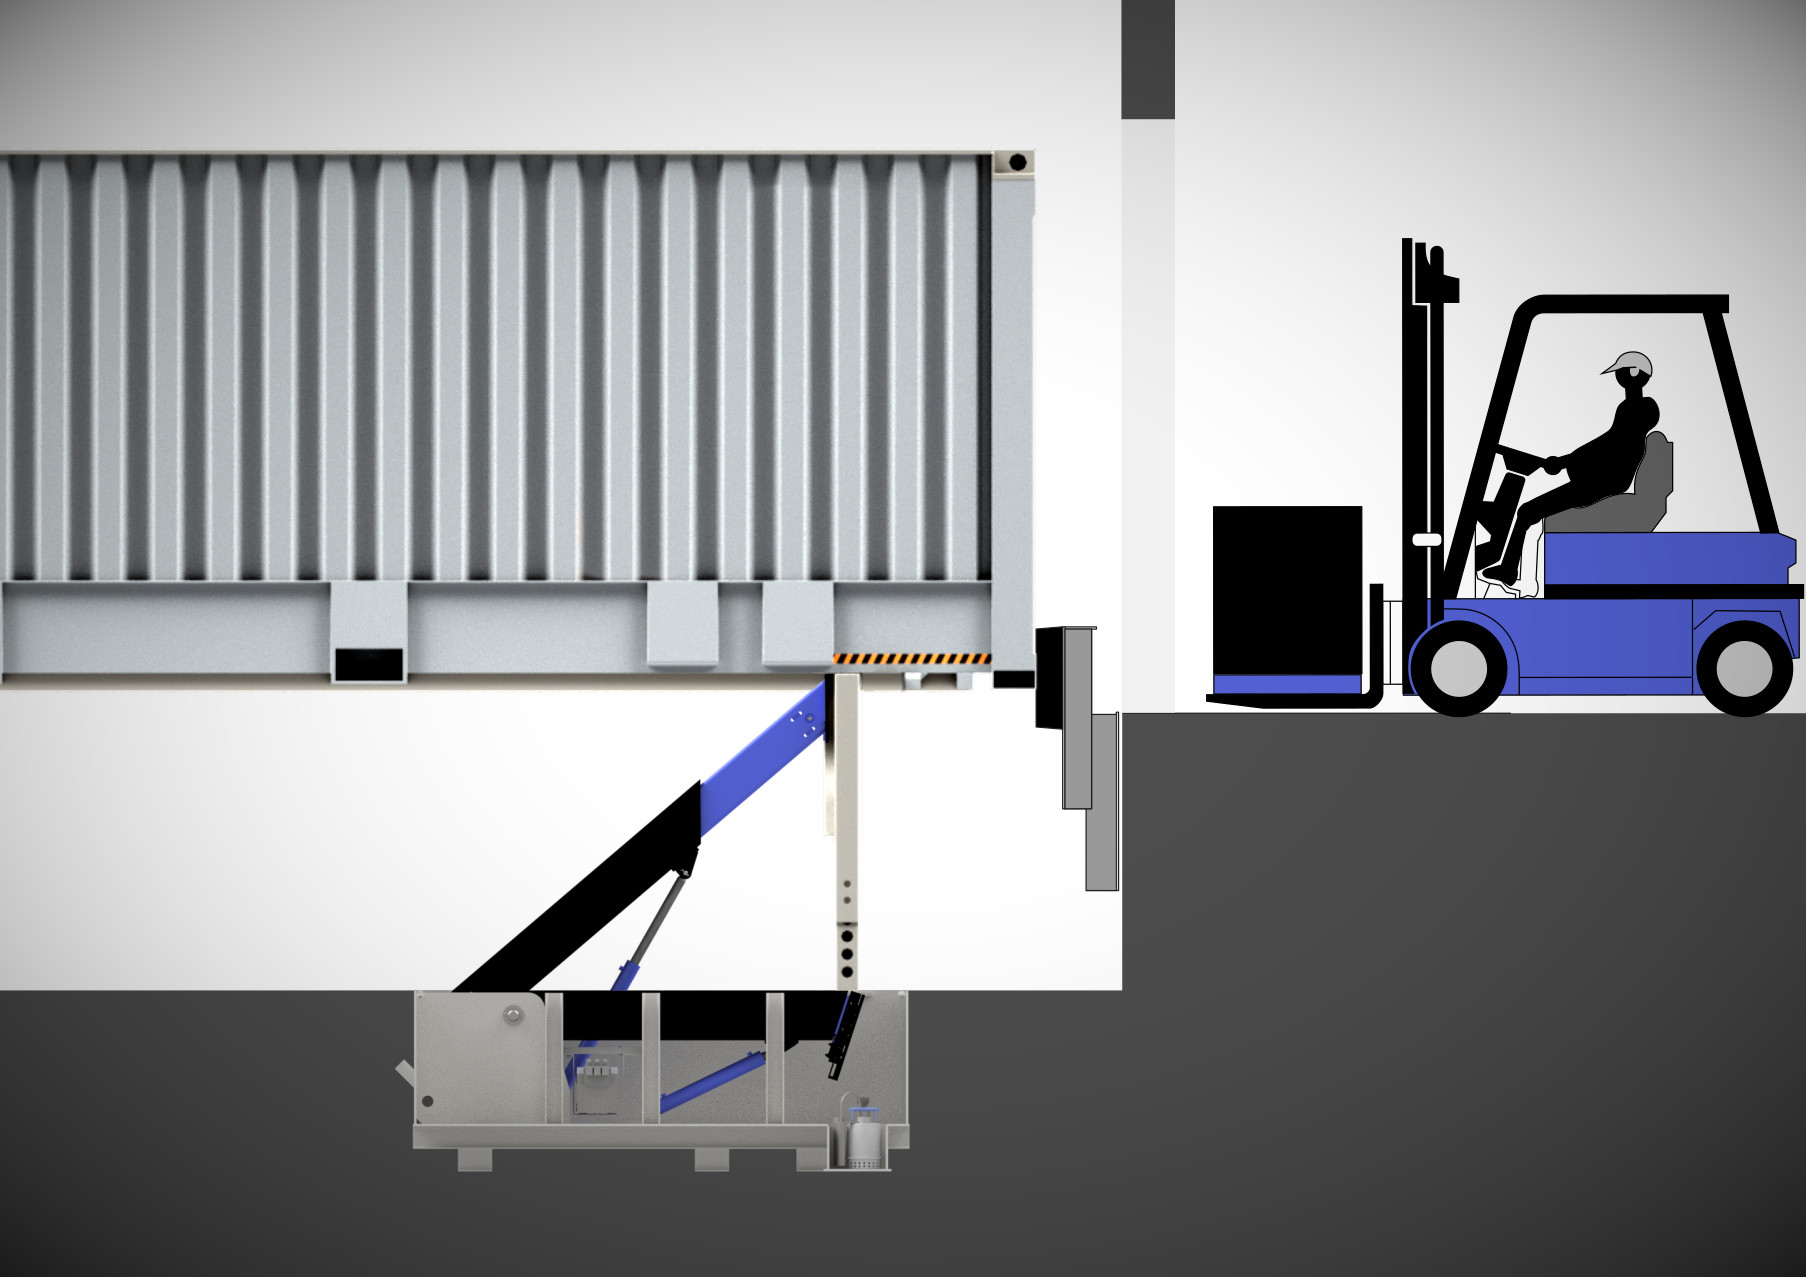 BLOCKDOCK-V2 for loading swap bodies. Block arm lifts to the steel beam